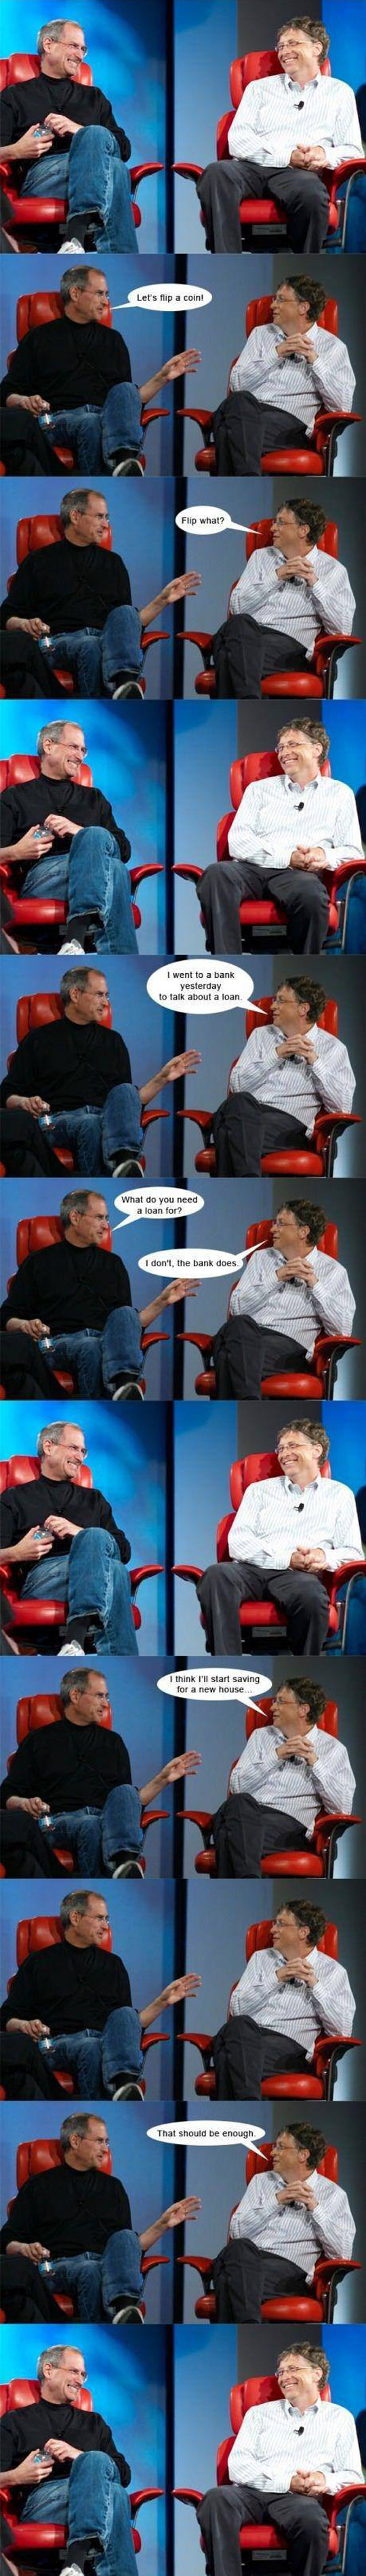 funny-Steve-Job-Bill-Gates-jokes-money